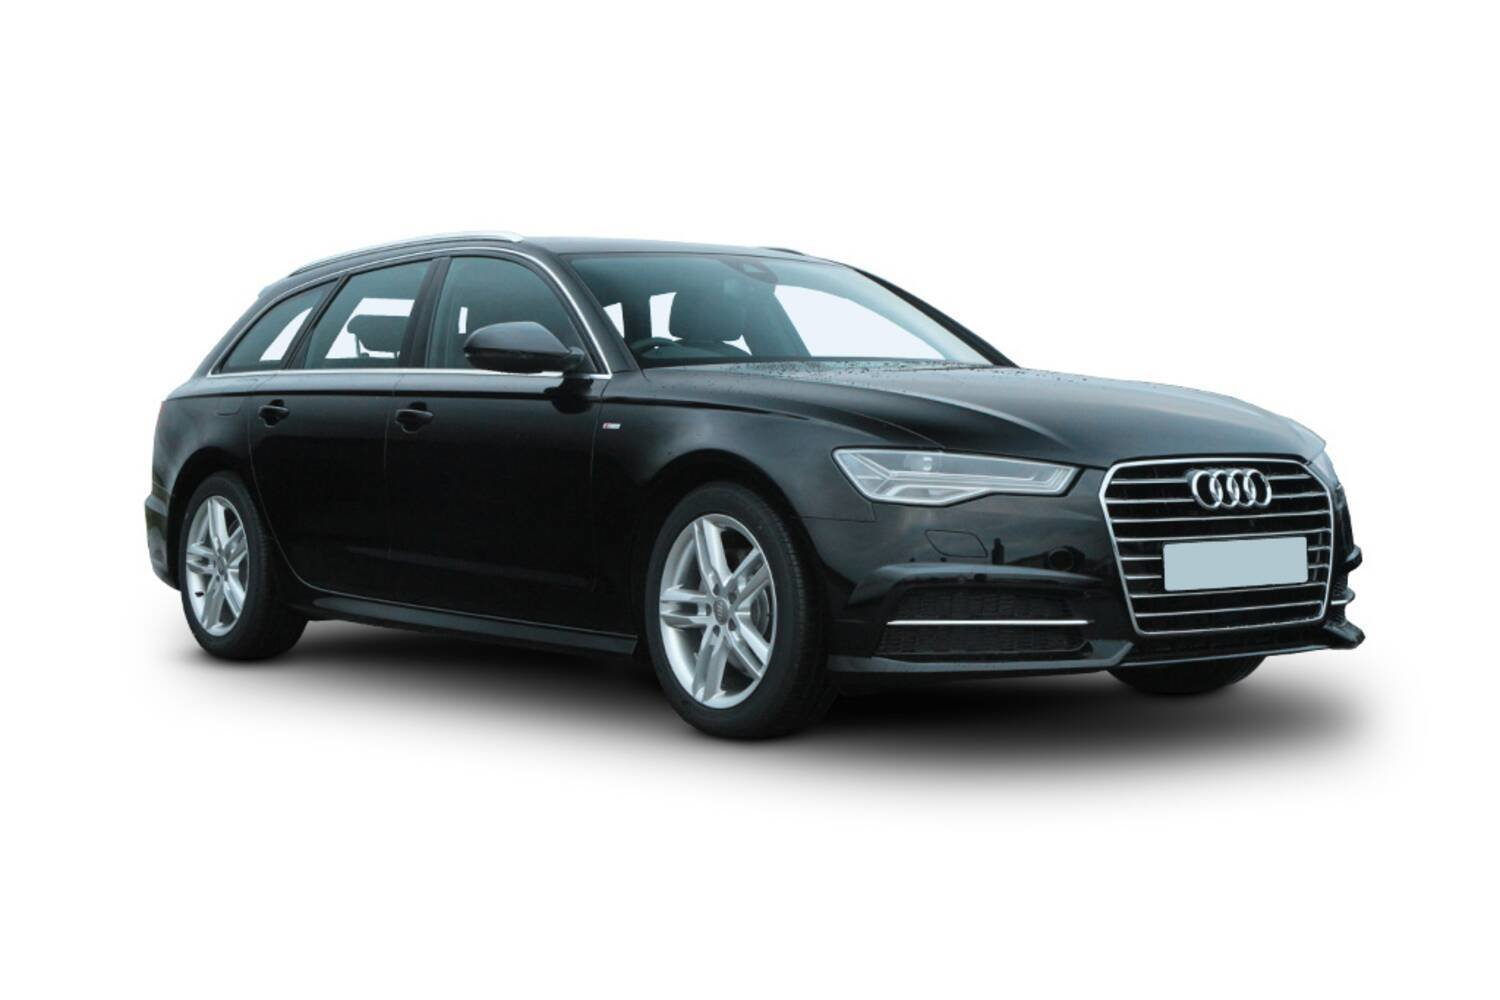 Latest New Audi A6 Avant Special Editions 3 Tdi 272 Ps Free Download